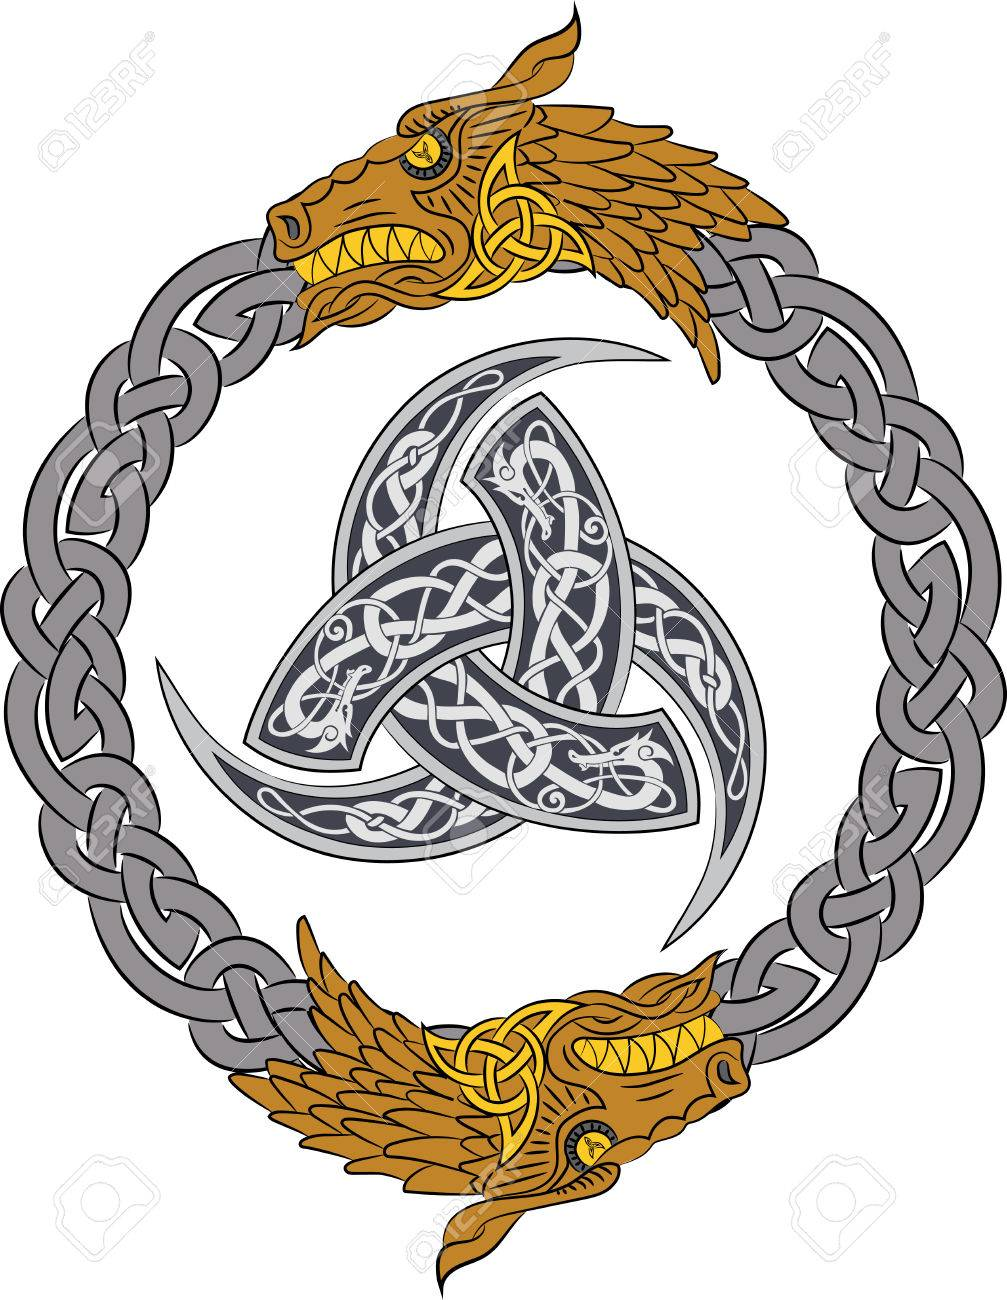 Golden dragons in silver wreath with triple horn of odin decorated golden dragons in silver wreath with triple horn of odin decorated with scandinavic ornaments vector buycottarizona